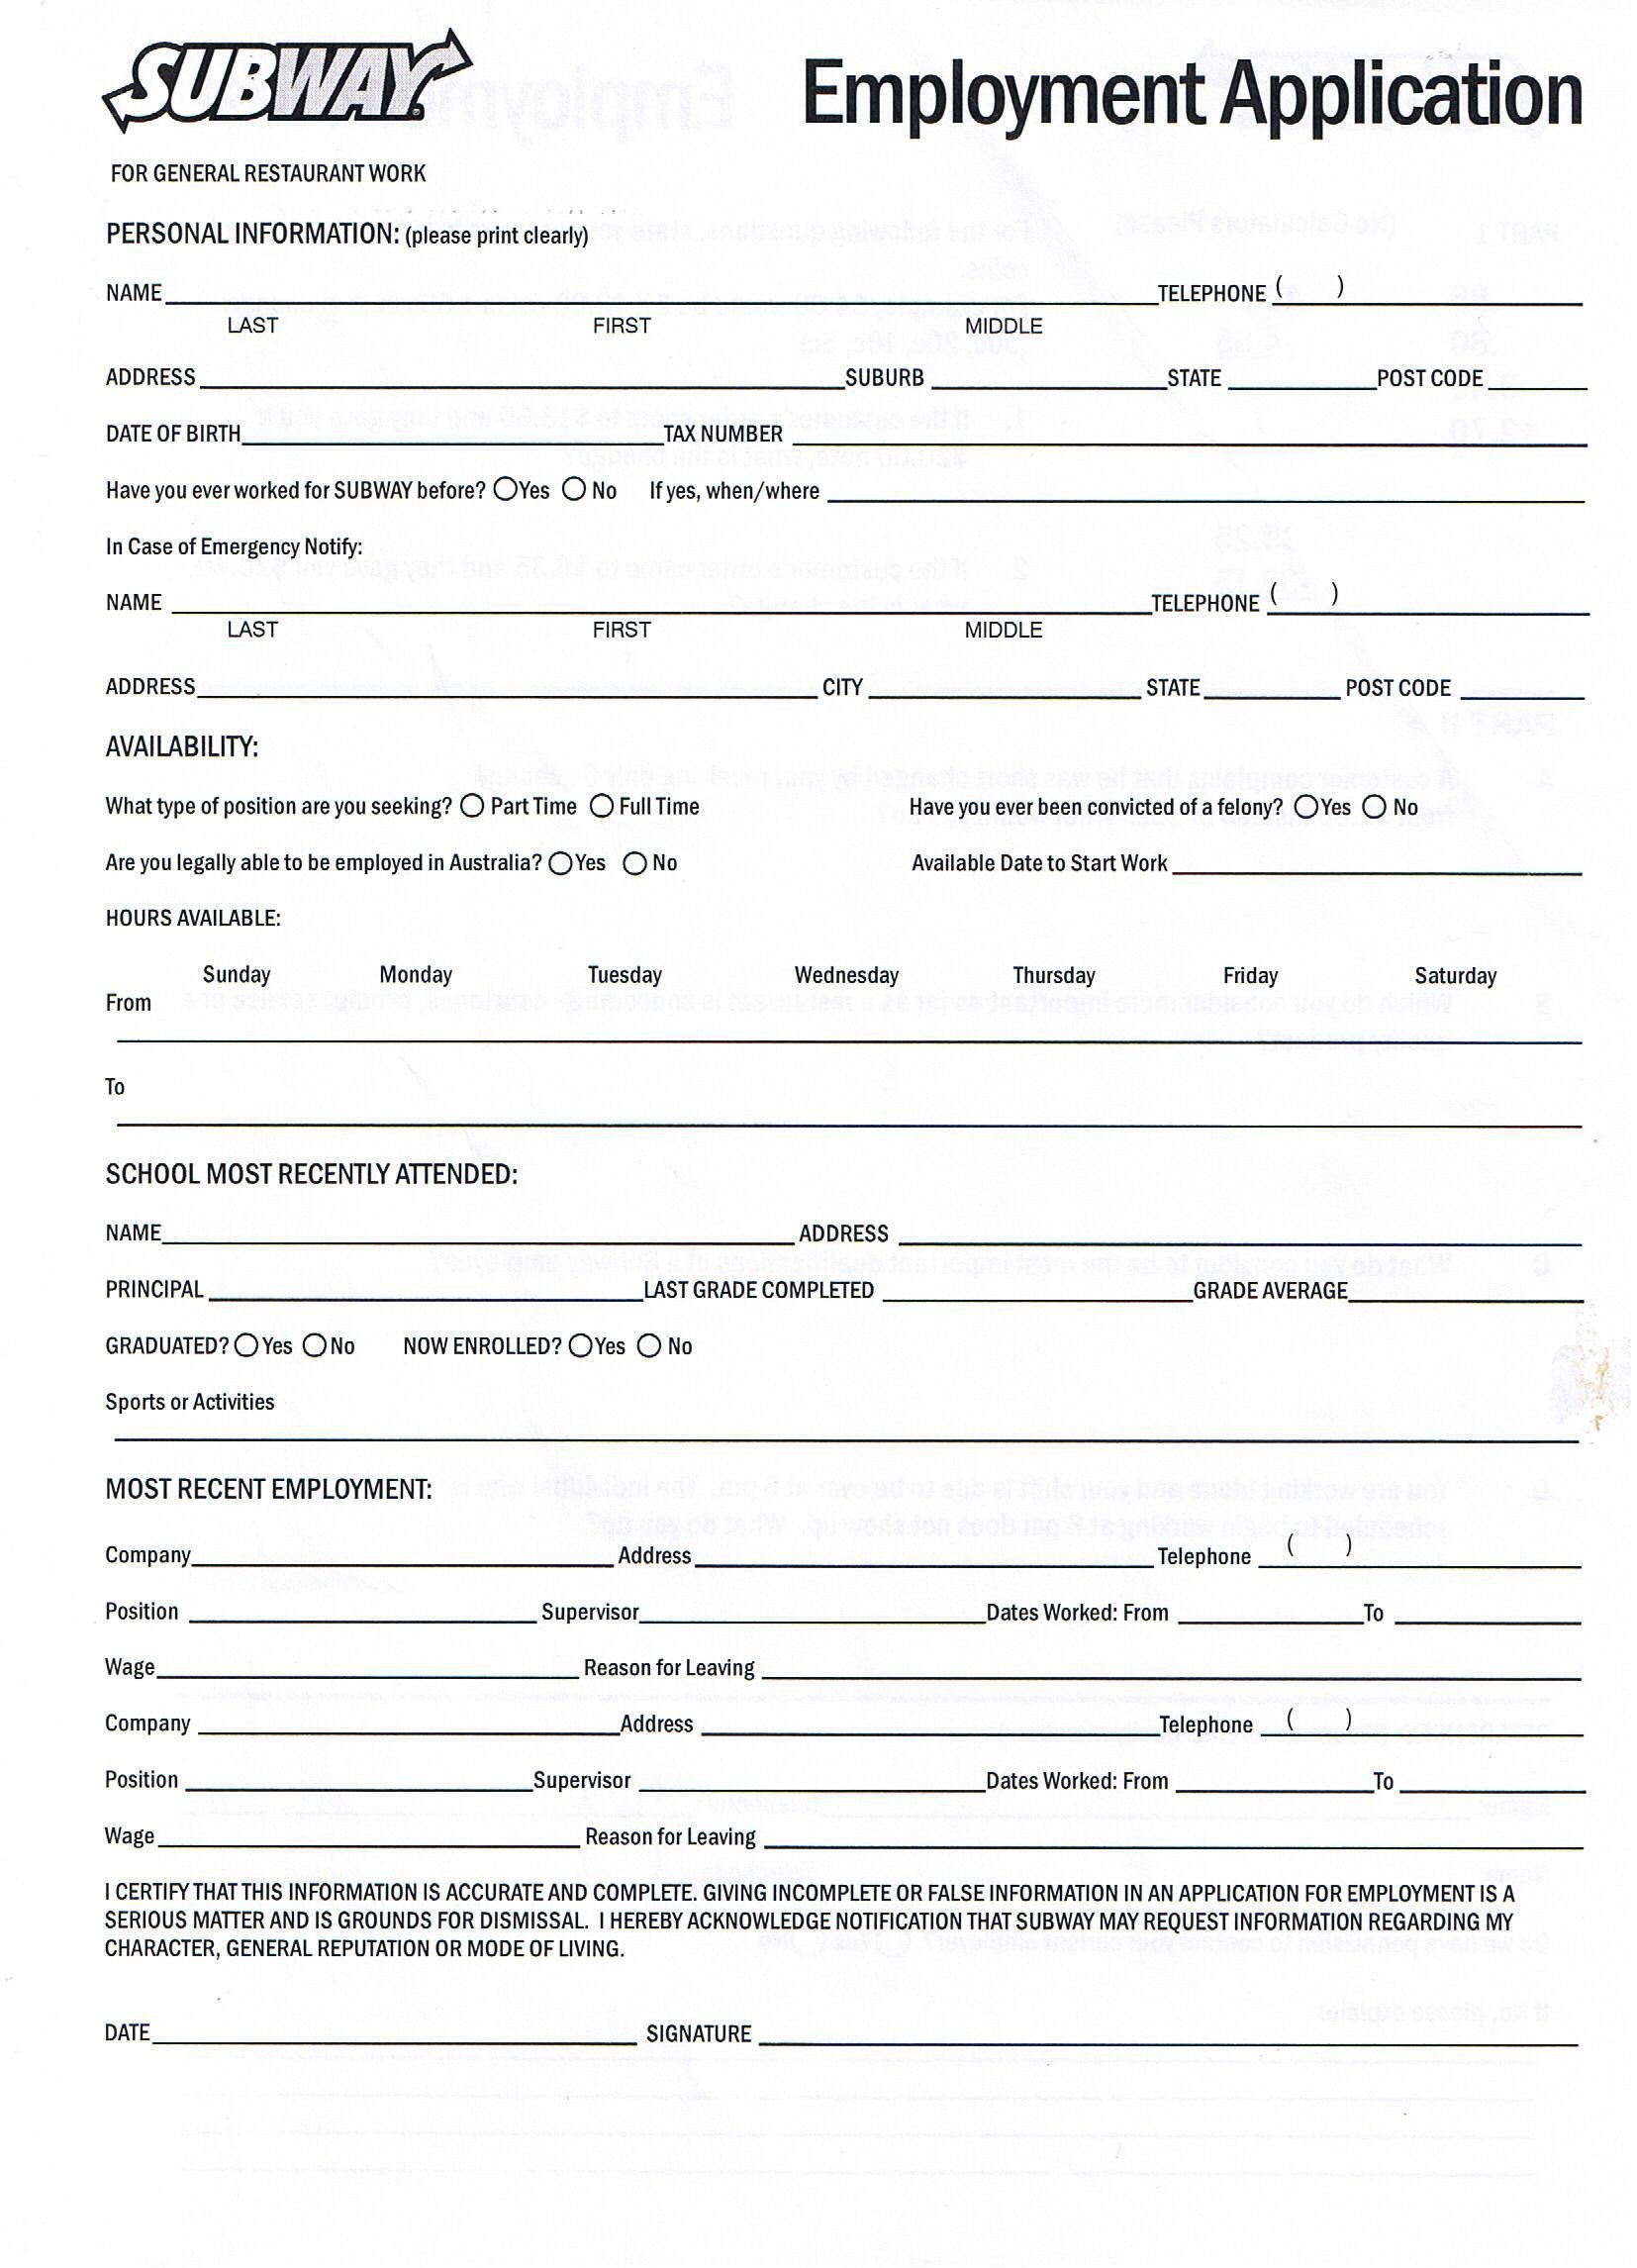 Free Employment Application Template Download Printable Job Application forms Online forms Download and